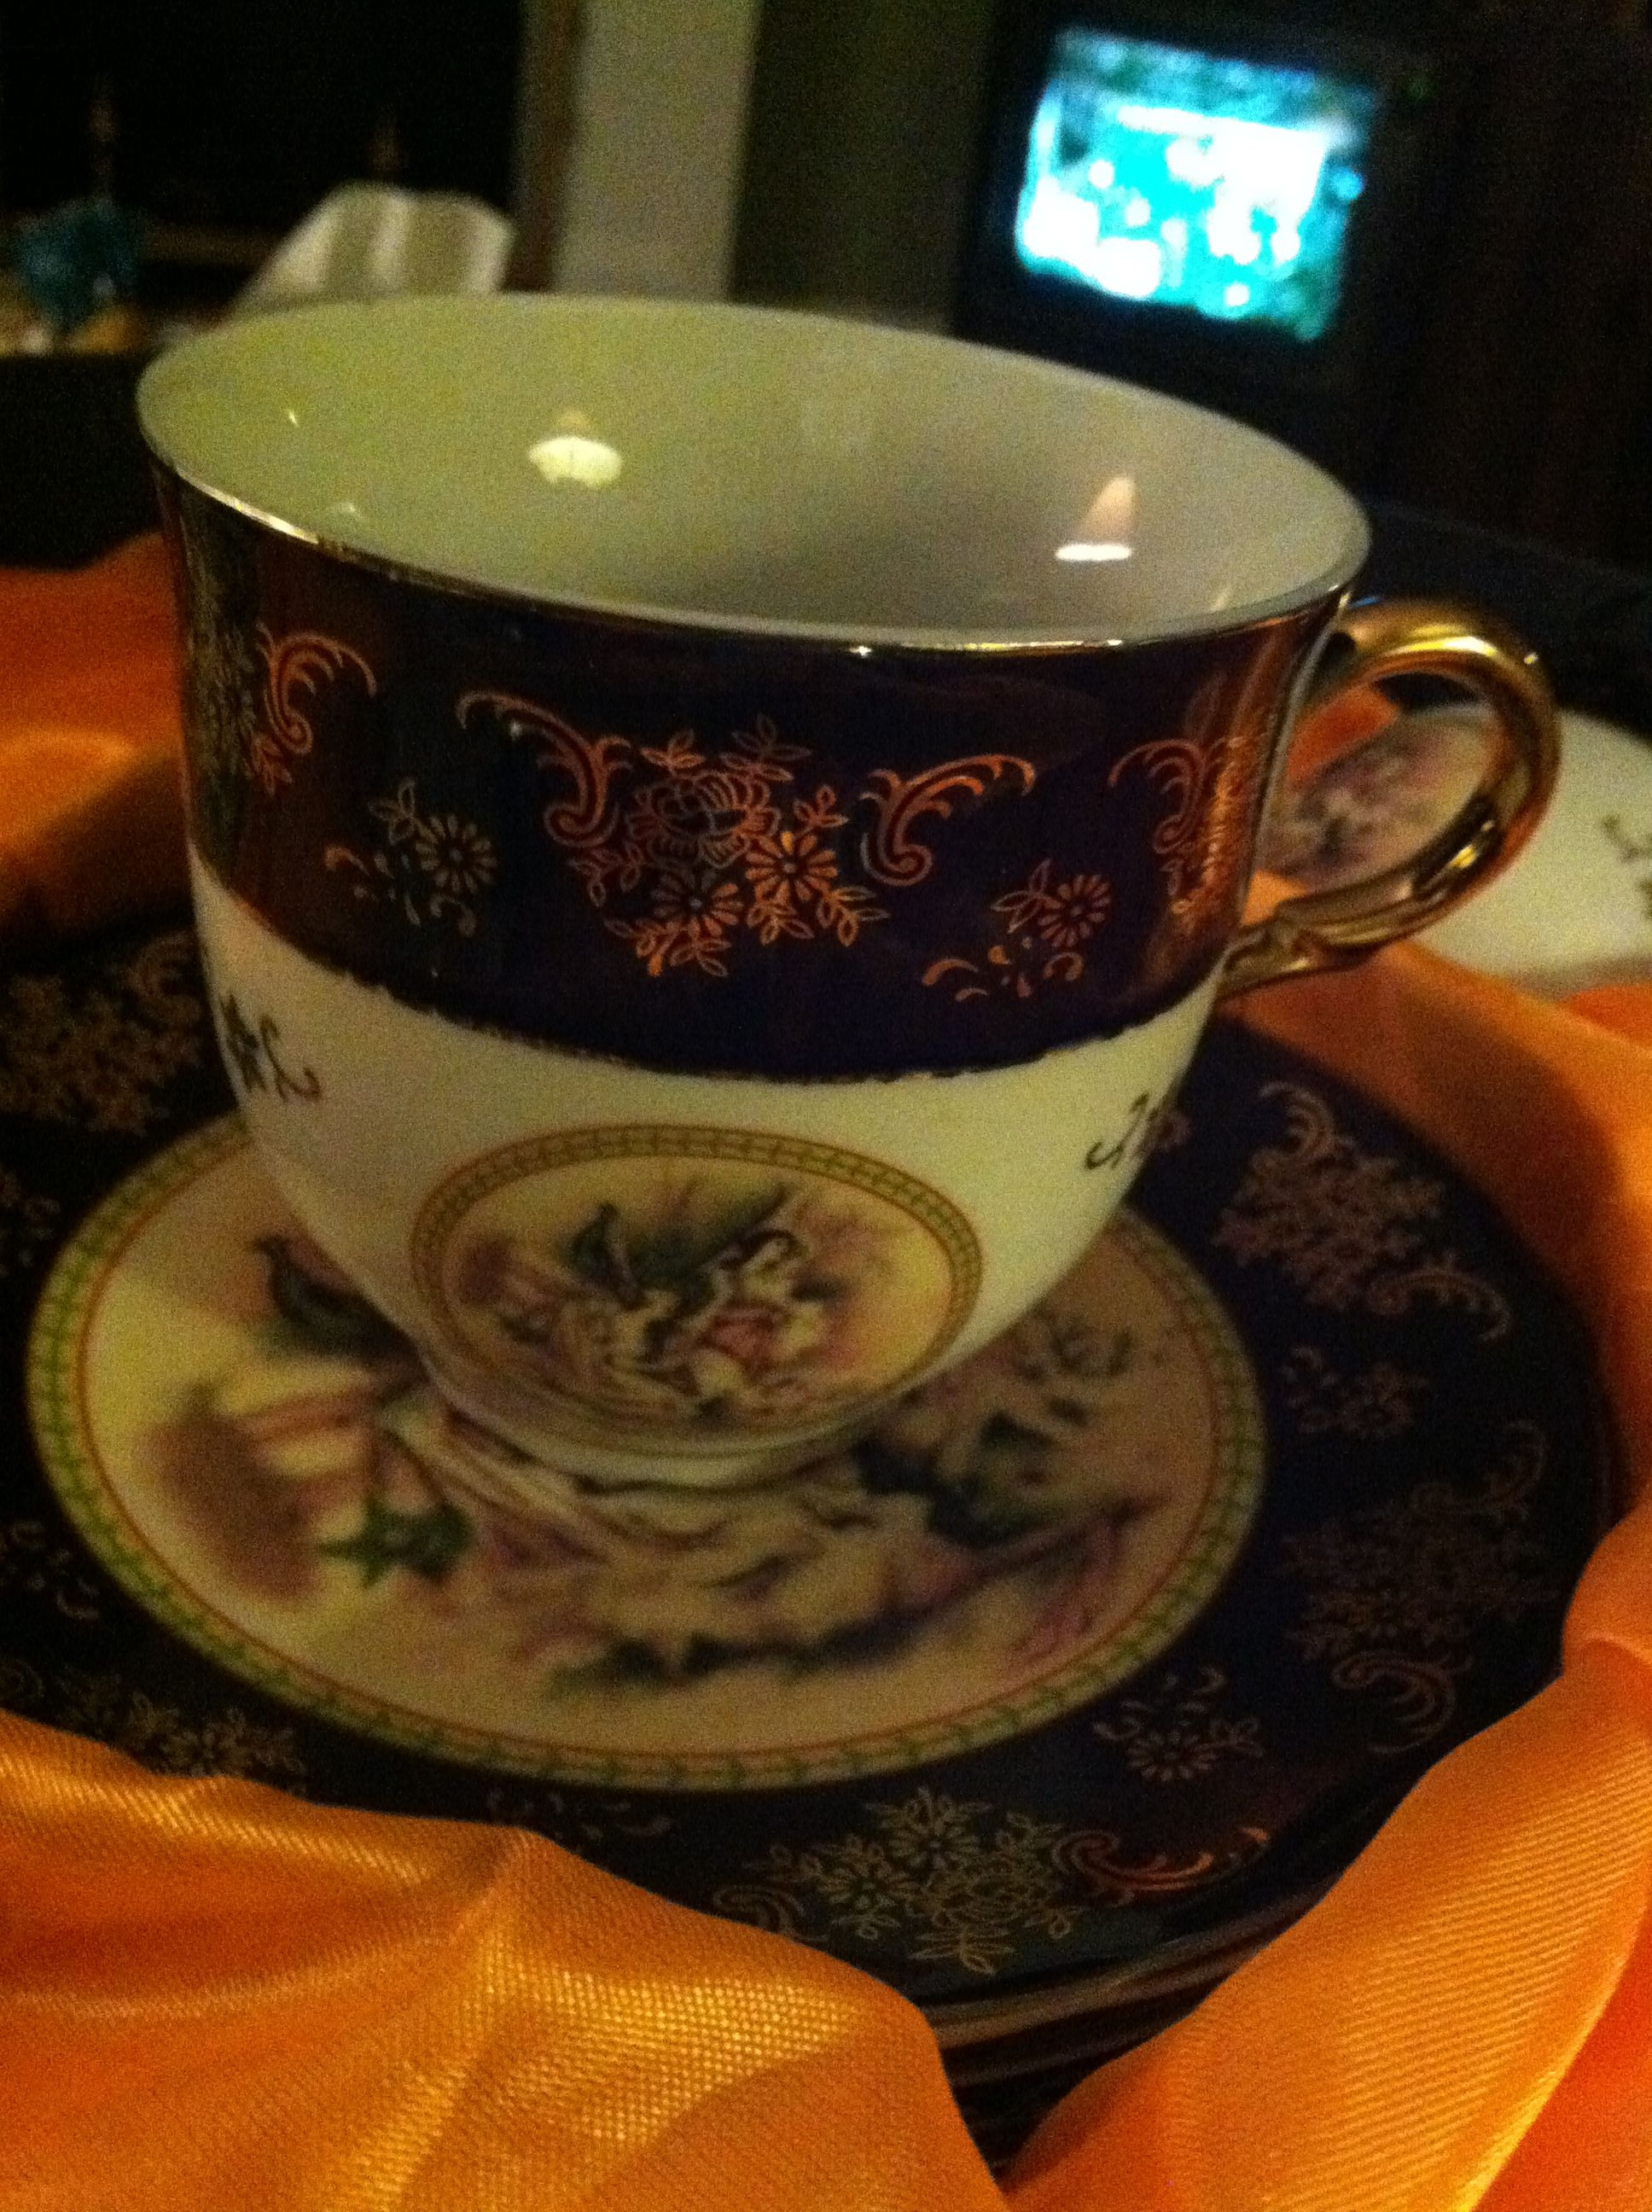 12pcs Tea Cup&Saucer Alpine Cuisine Czech Republic 24k Gold in EzJac's Garage Sale in Bridgeview , IL for $160.00.